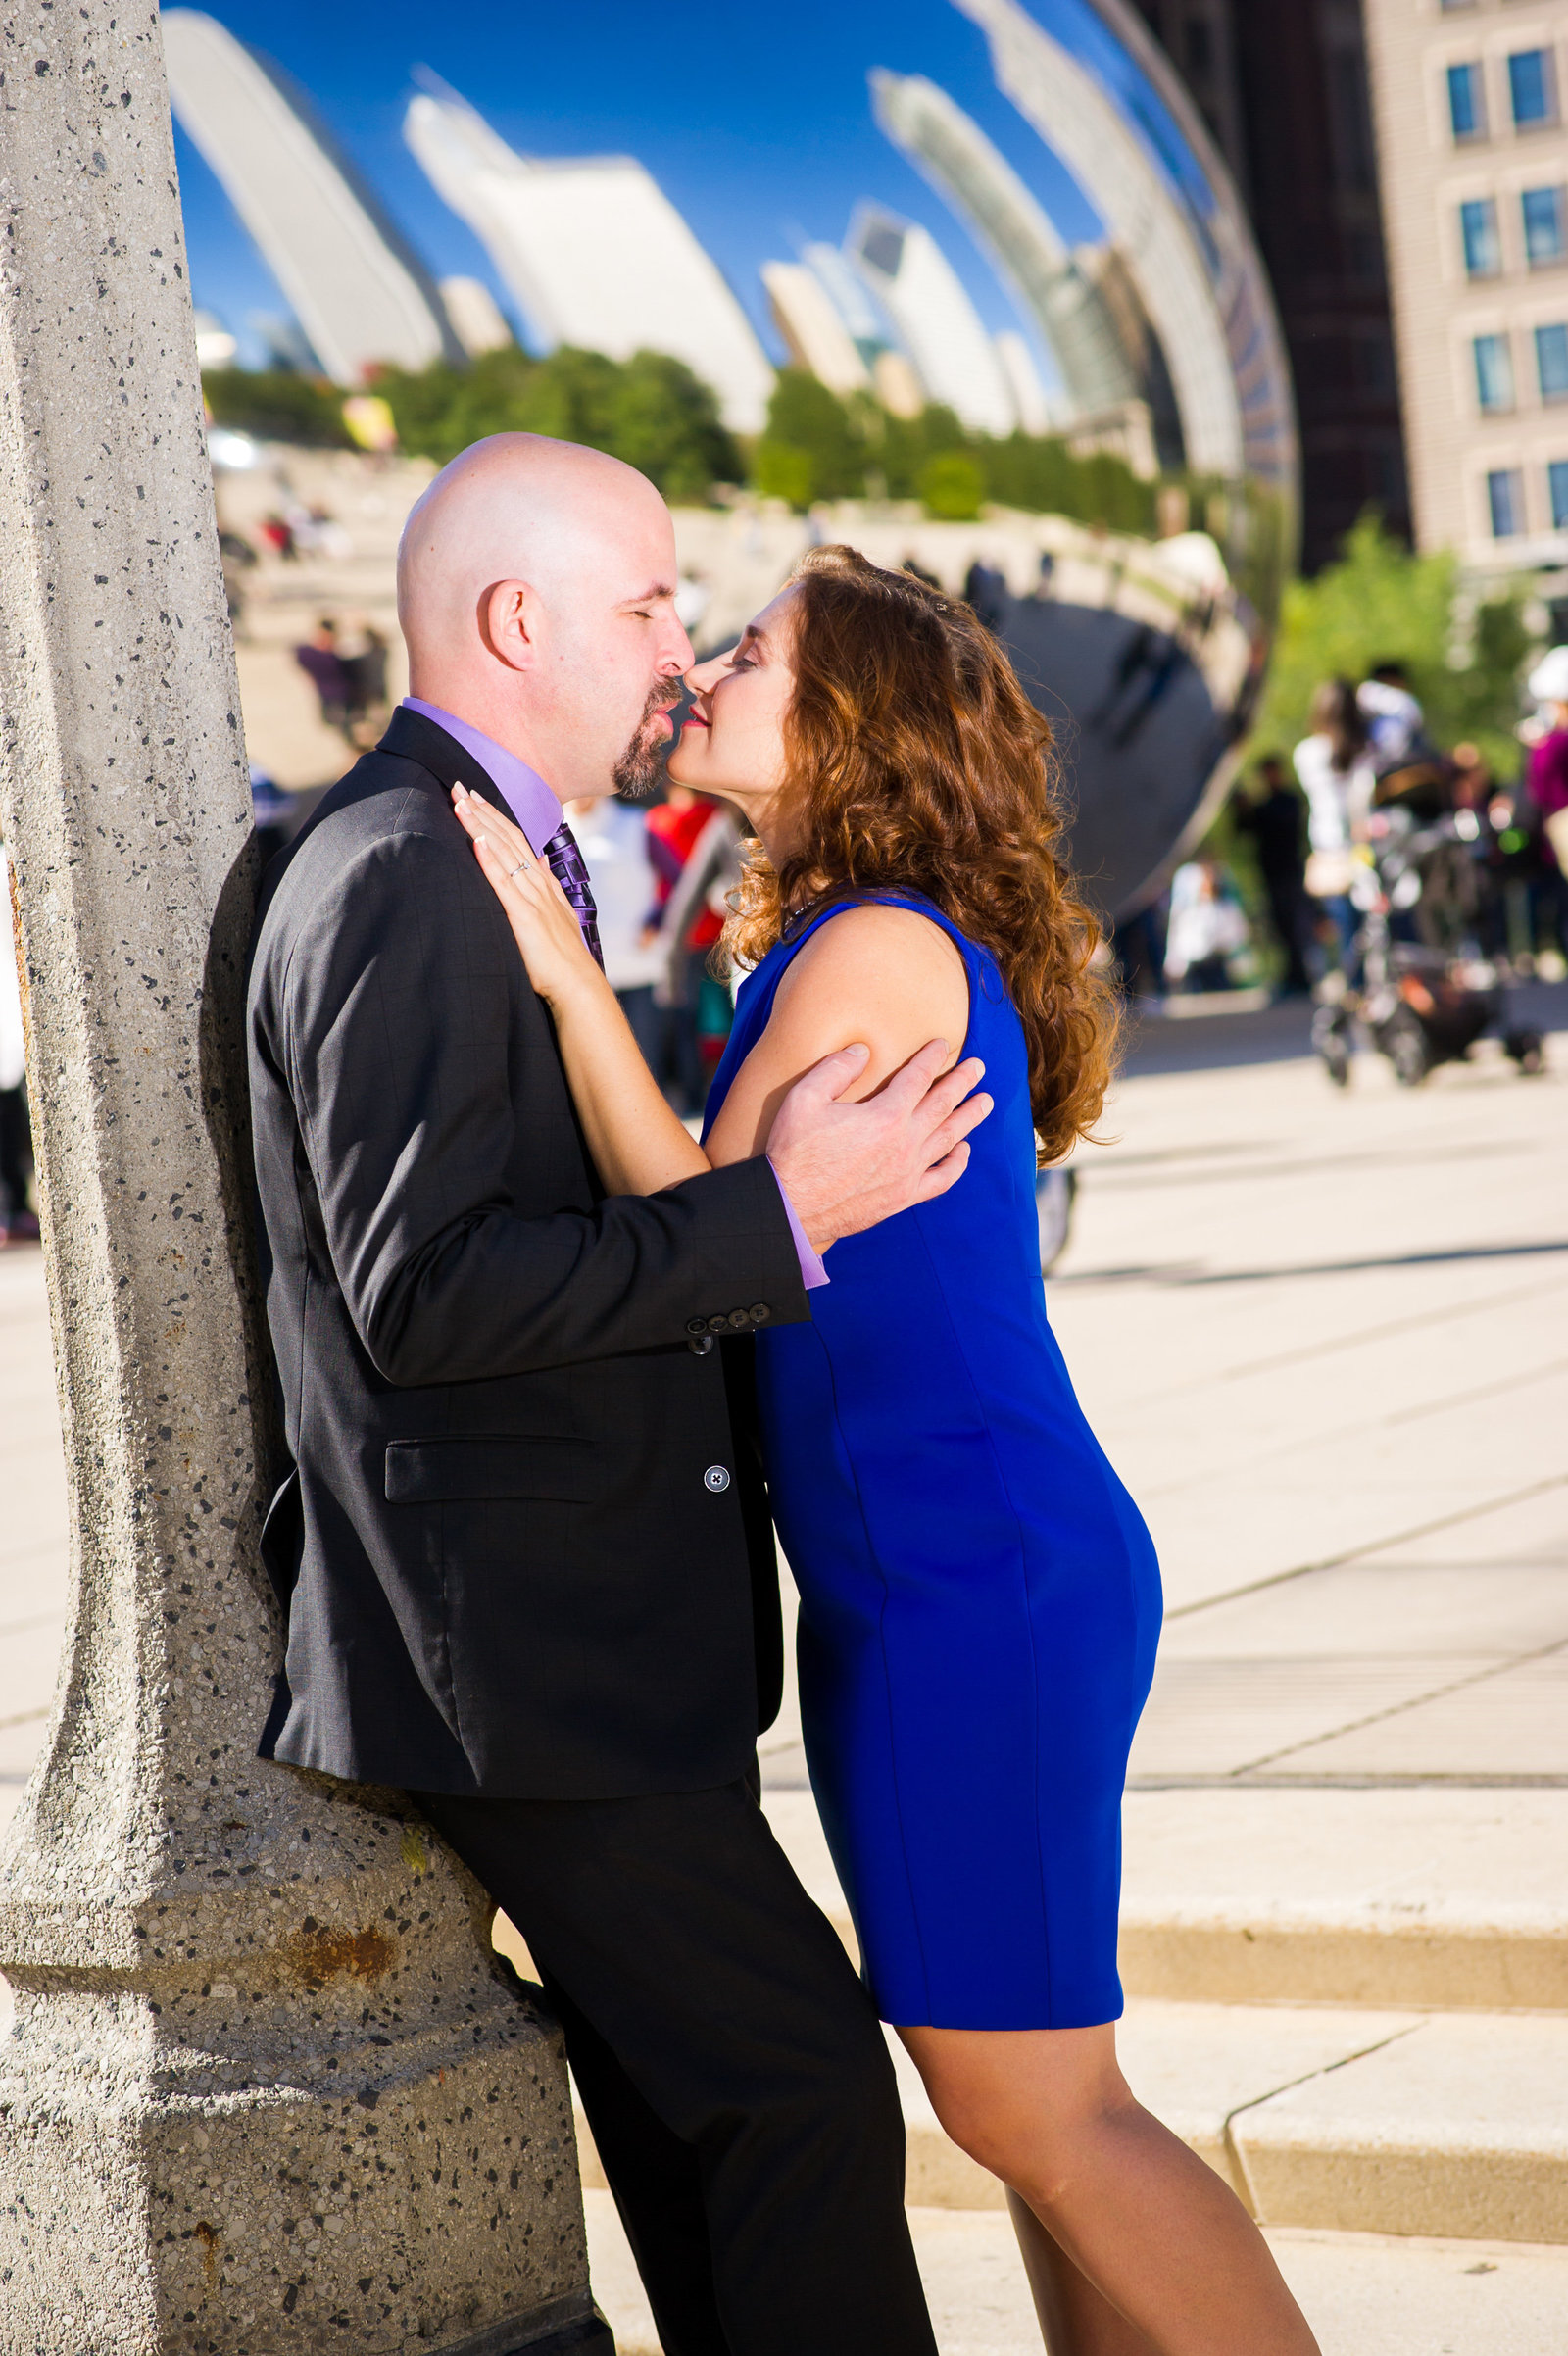 161023.AngelaGarbotPhotography.Chicago.Prewedding.Engagement.AnnaEric.074.Showit